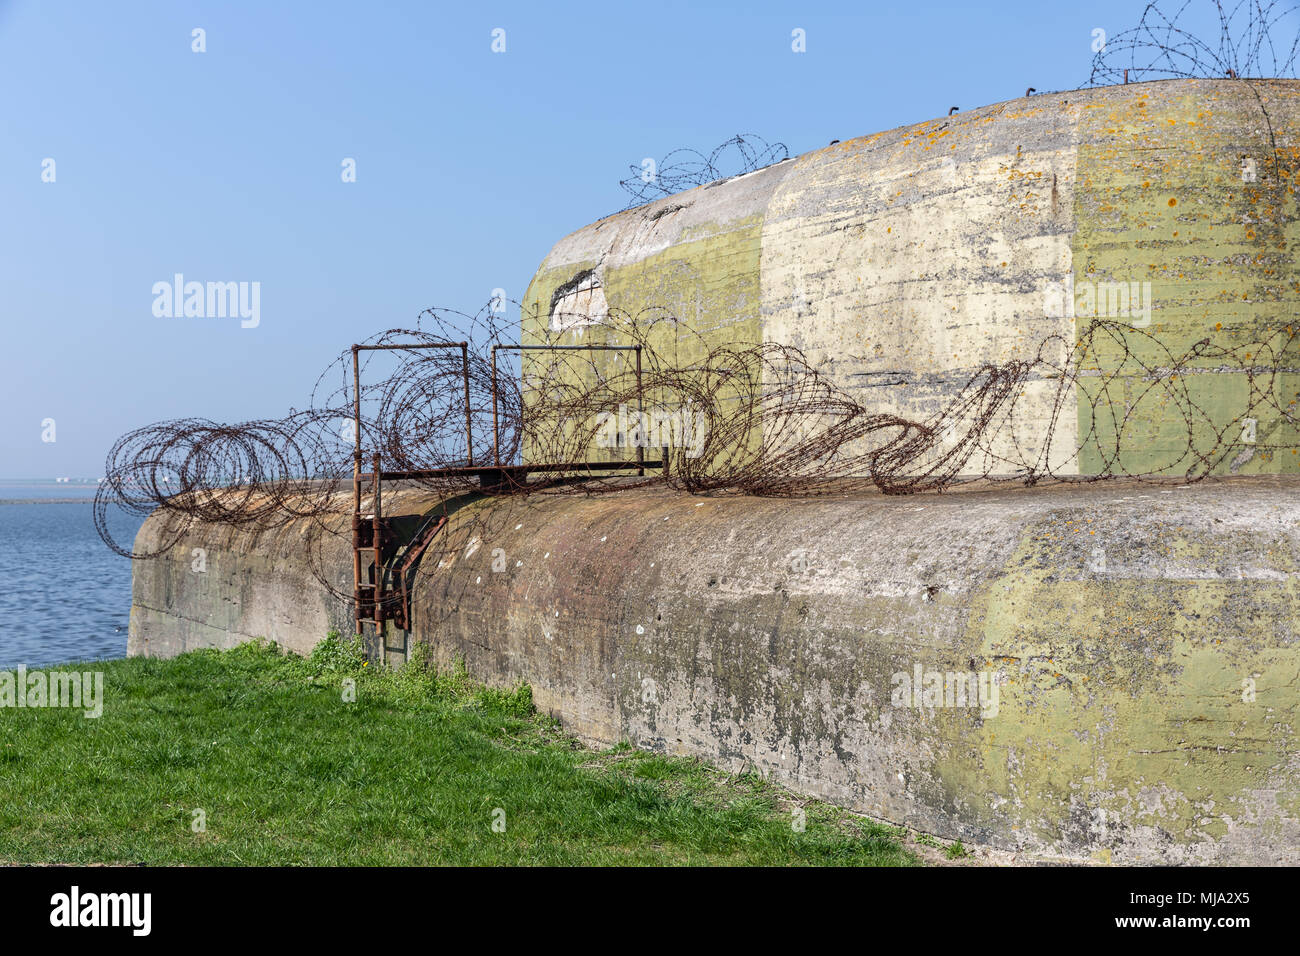 Ww2 Border Stockfotos & Ww2 Border Bilder - Alamy